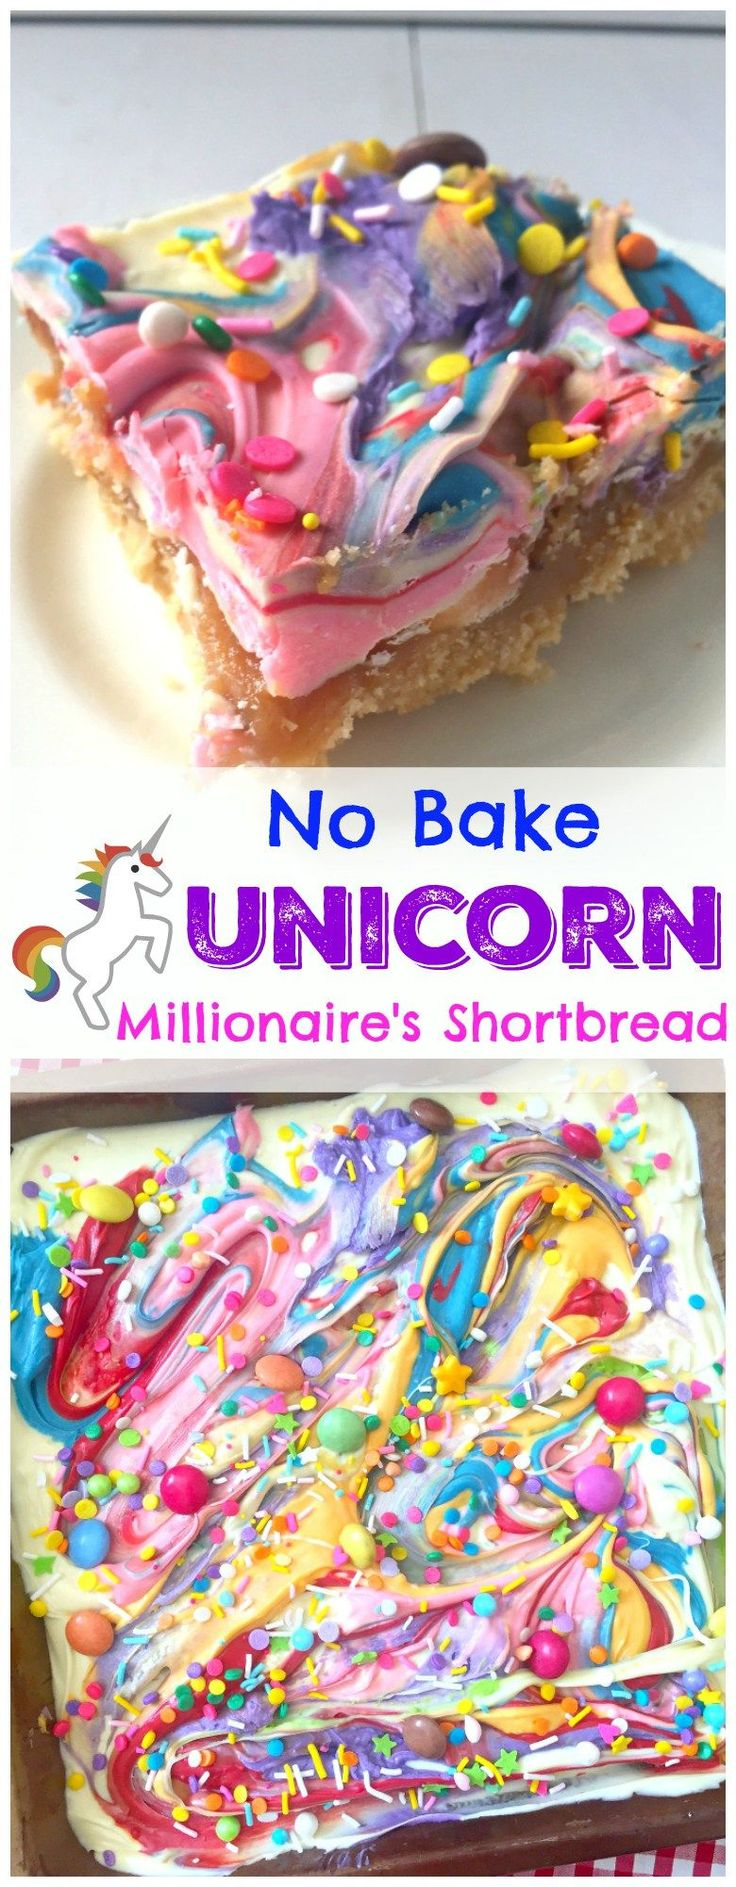 Crumbly rich shortbread, delicious caramel, and white chocolate make for the prettiest, most magical No Bake Unicorn Millionaire's Shortbread Recipe